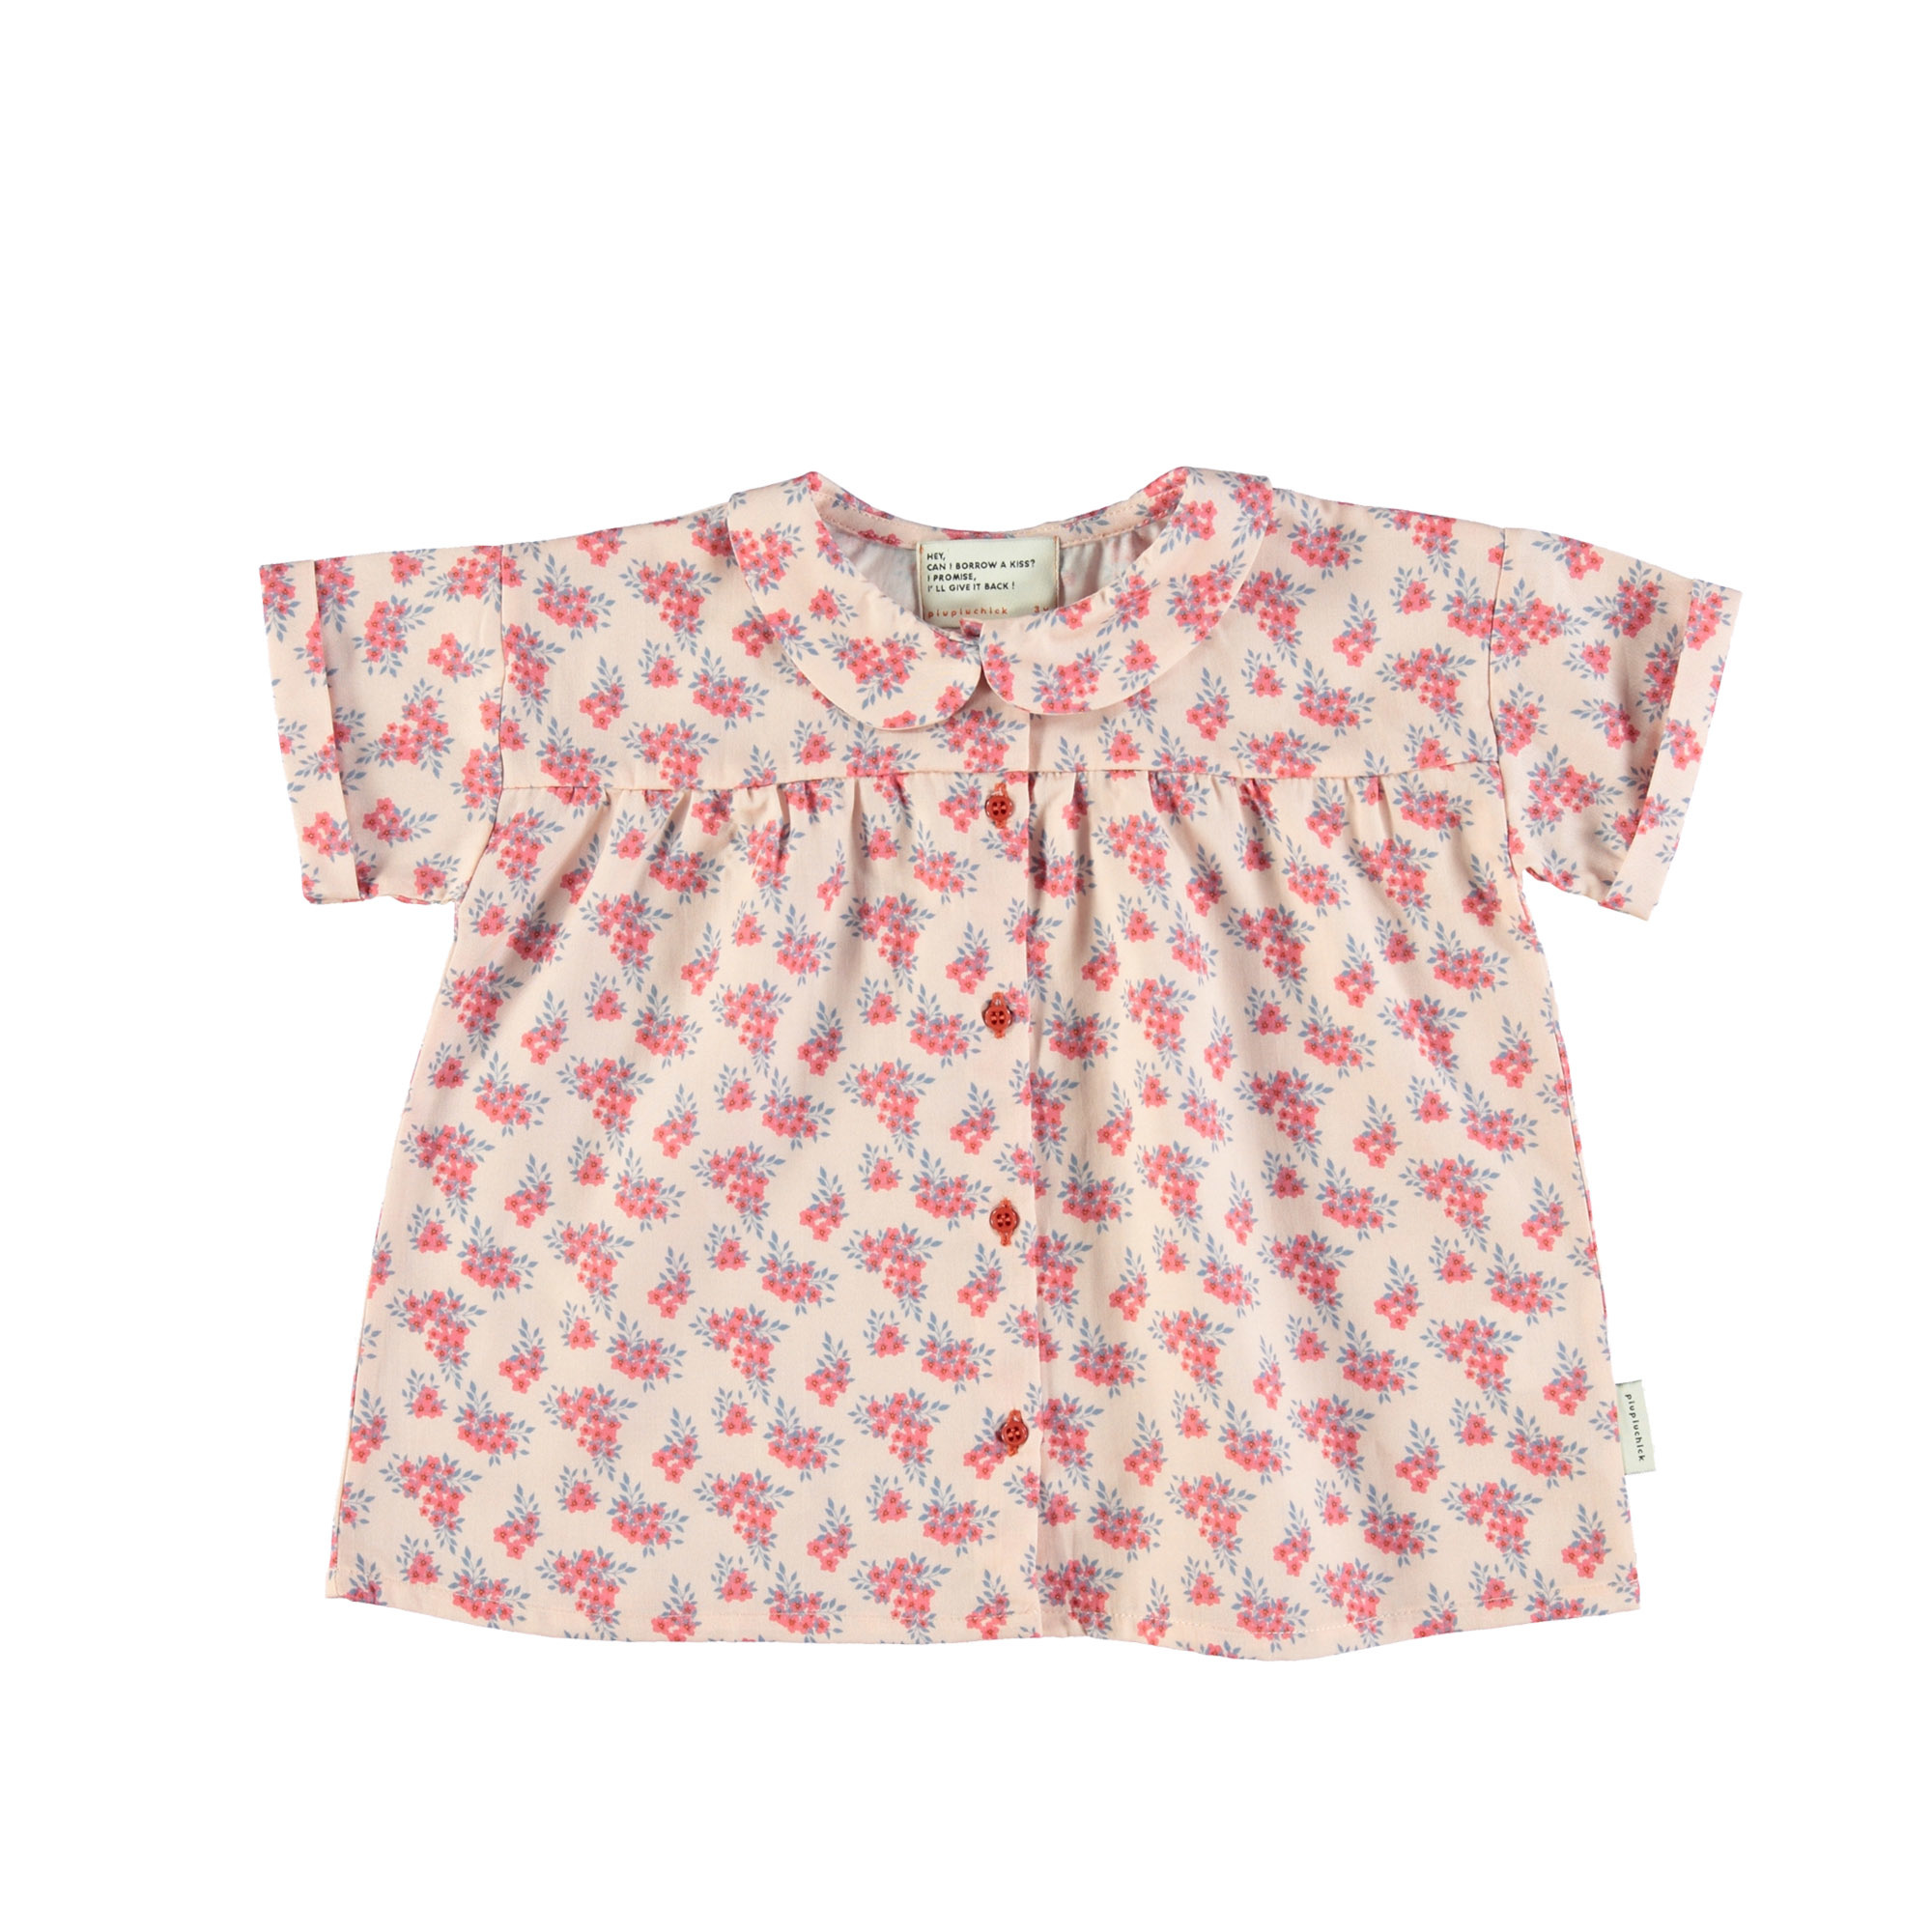 piupiuchick Peter pan shirt | pale pink with flowers